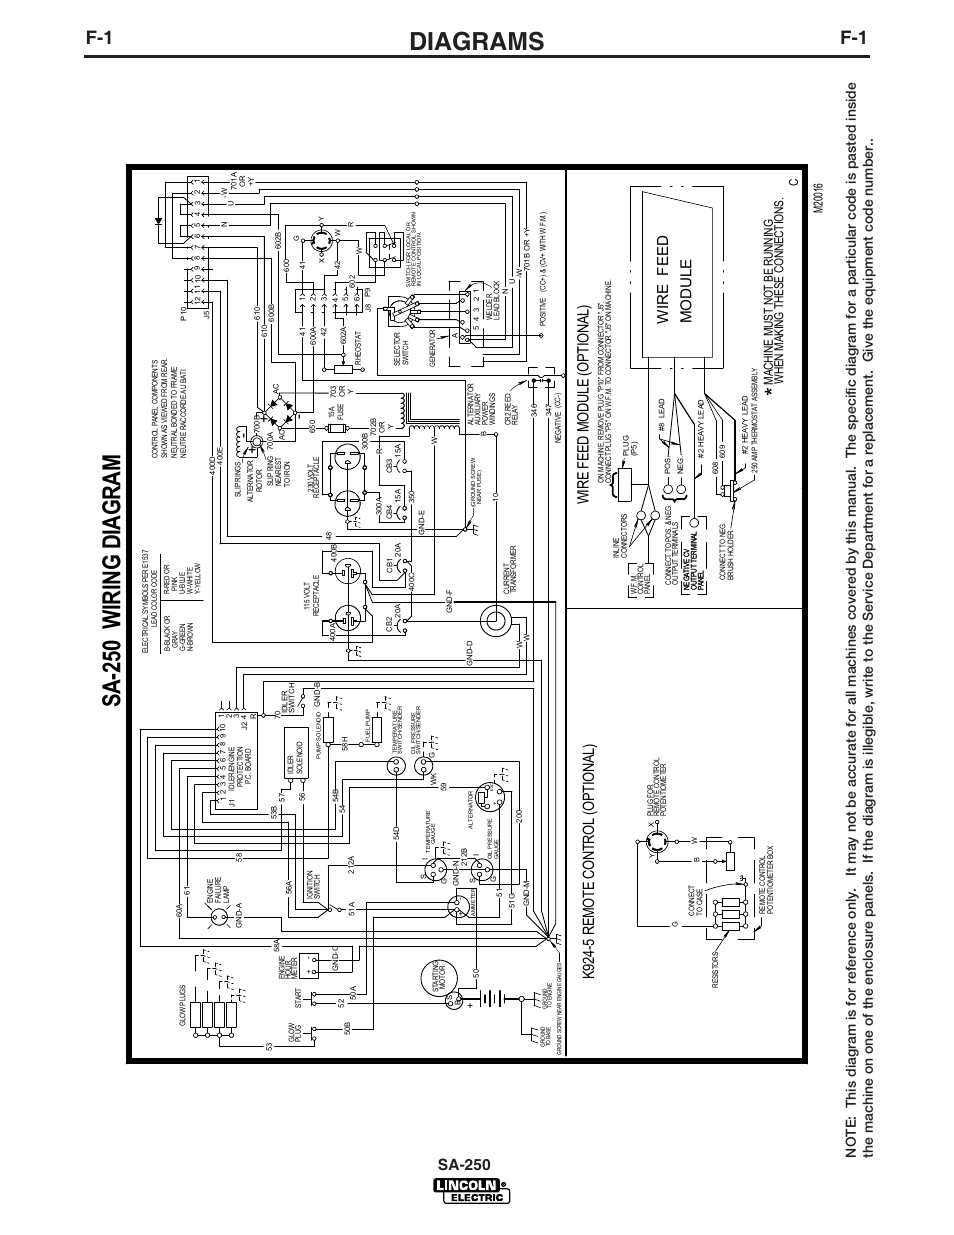 hight resolution of diagrams sa 25 0 w iri ng di agram sa 250 lincoln electric sa 250 user manual page 26 33